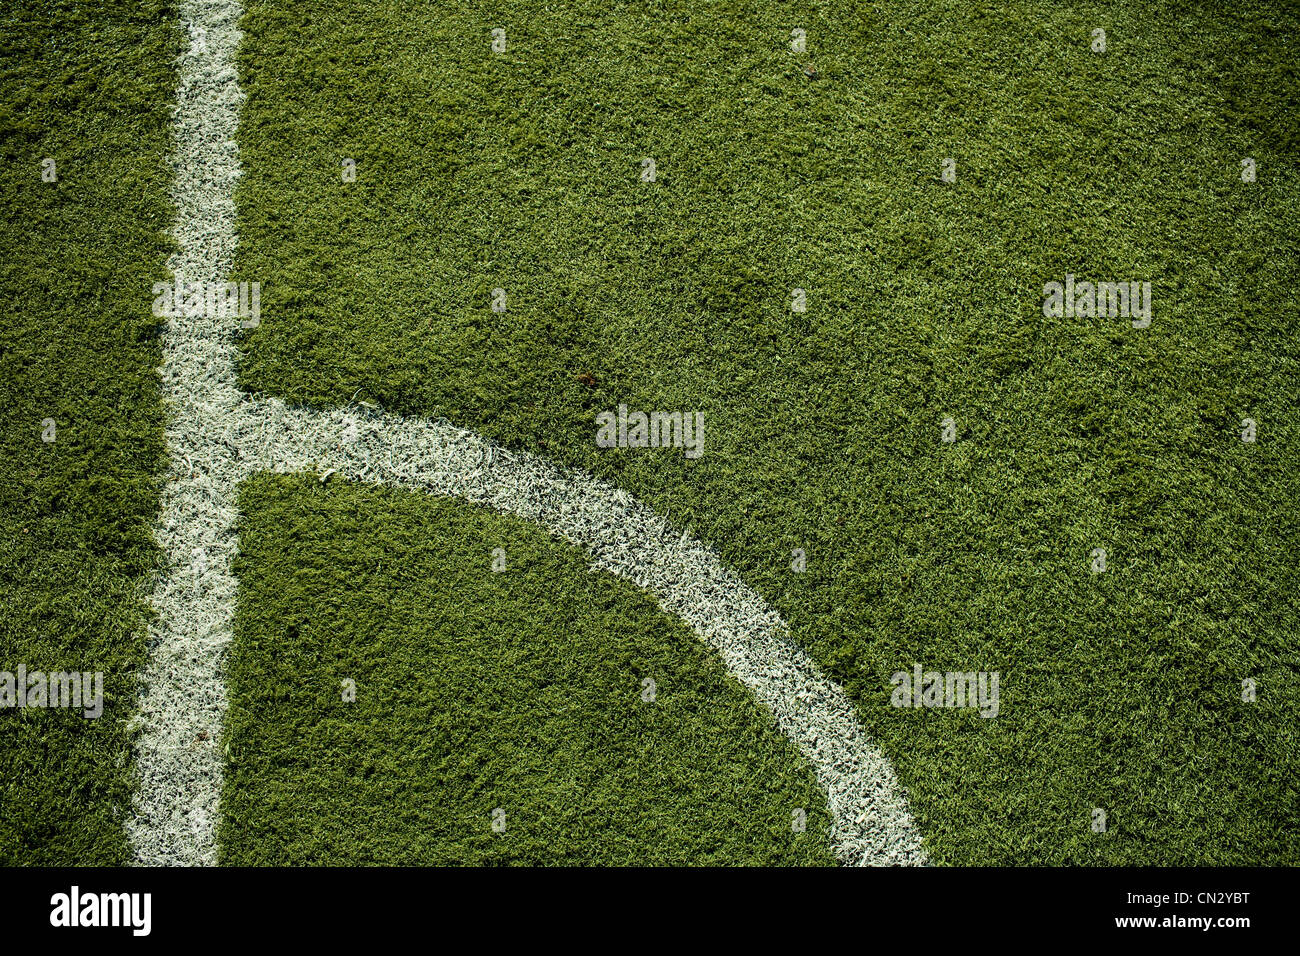 Inscriptions en ligne sur terrain de football Photo Stock